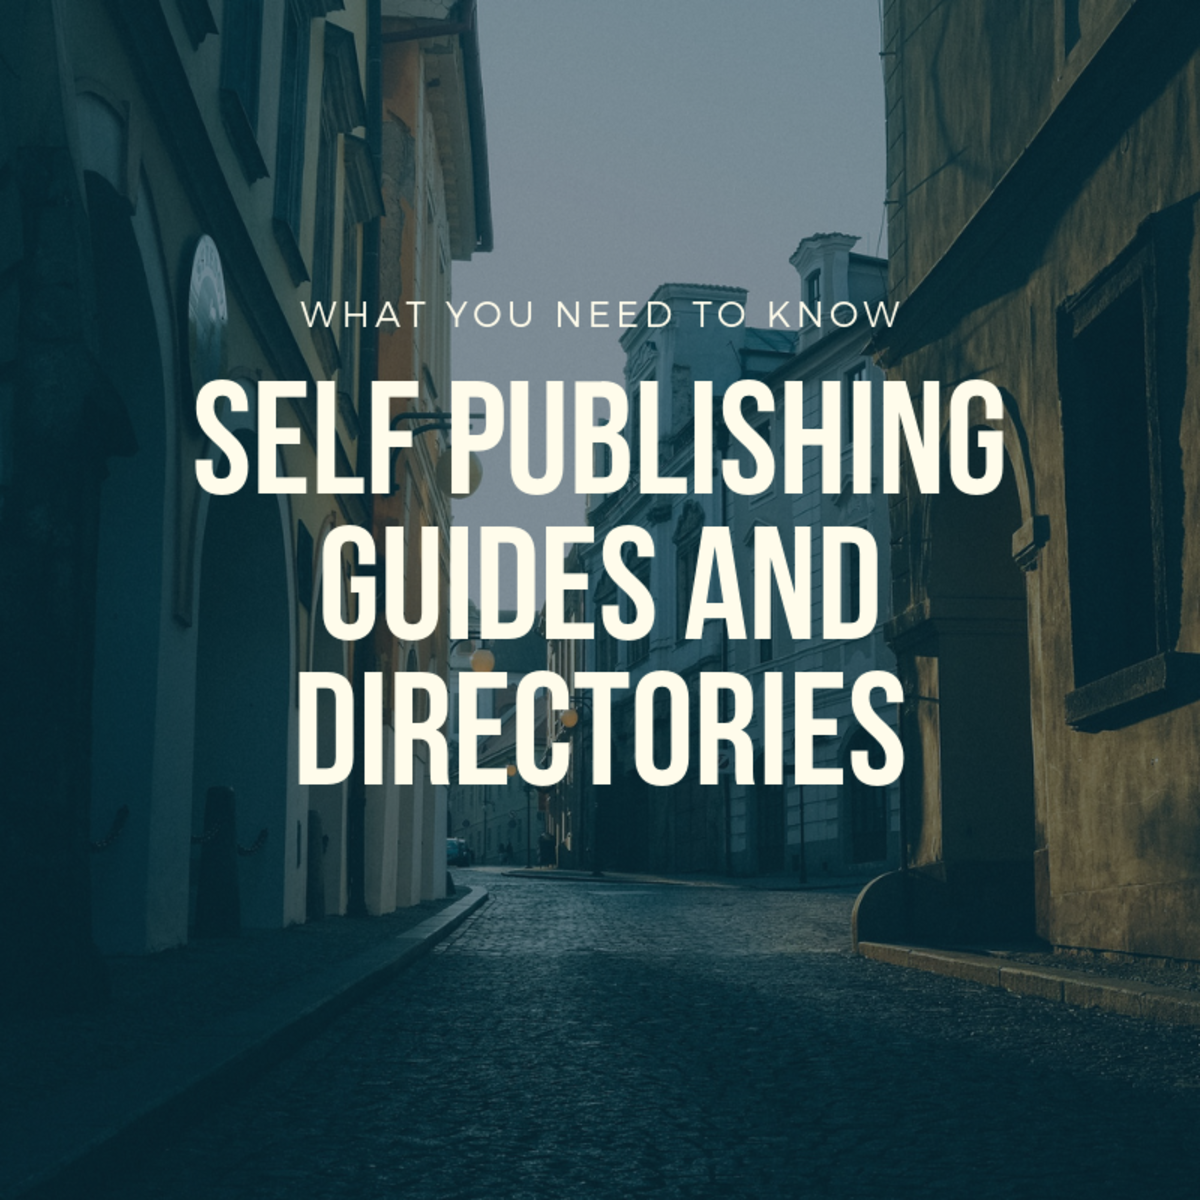 Self Publishing Guides and Directories: What You Need to Know